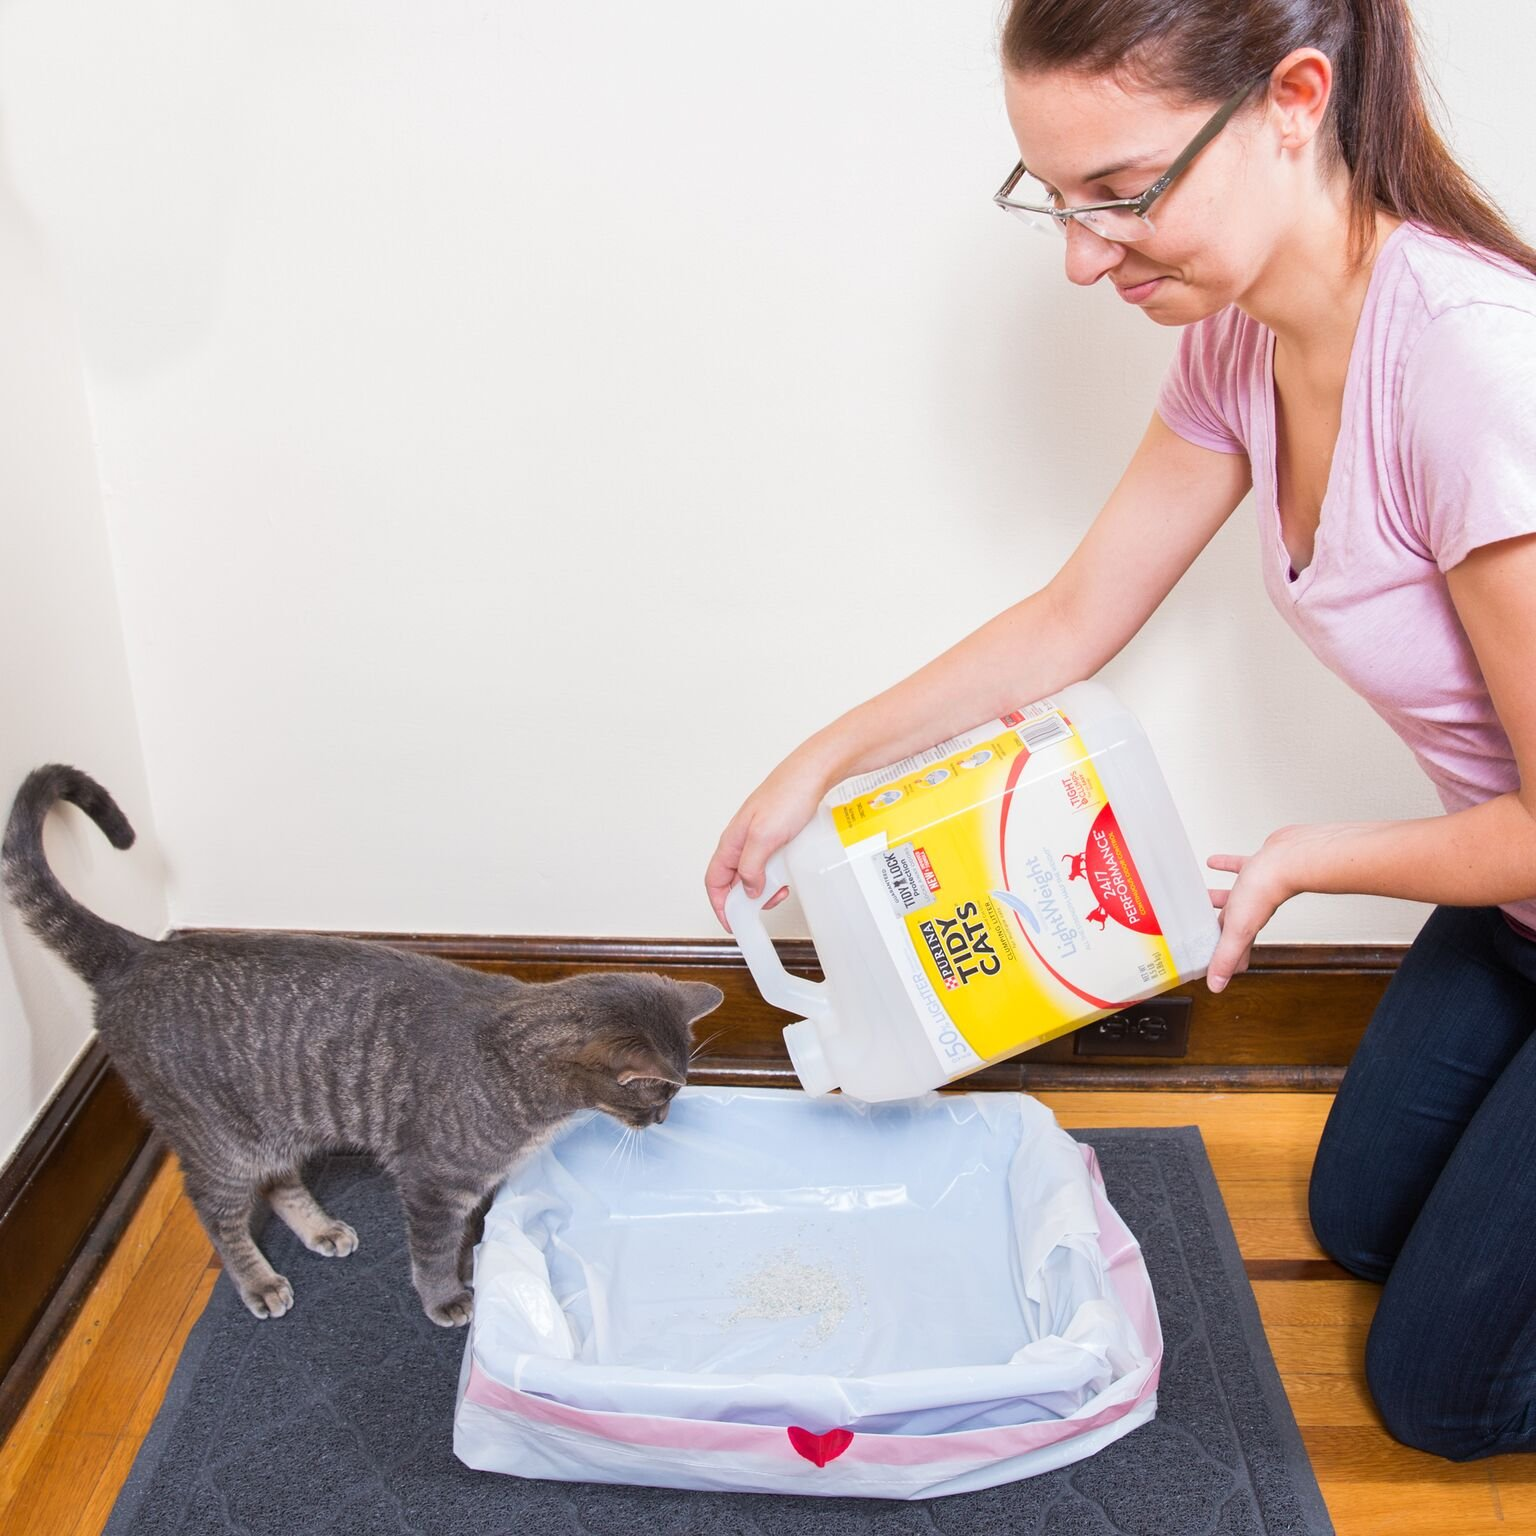 Easyology Ziggy Cat Litter Box Liners - Super Strong and Thick Cat Litter Liner 3-Pack -15 Litter Liners - Cat Litter Bags